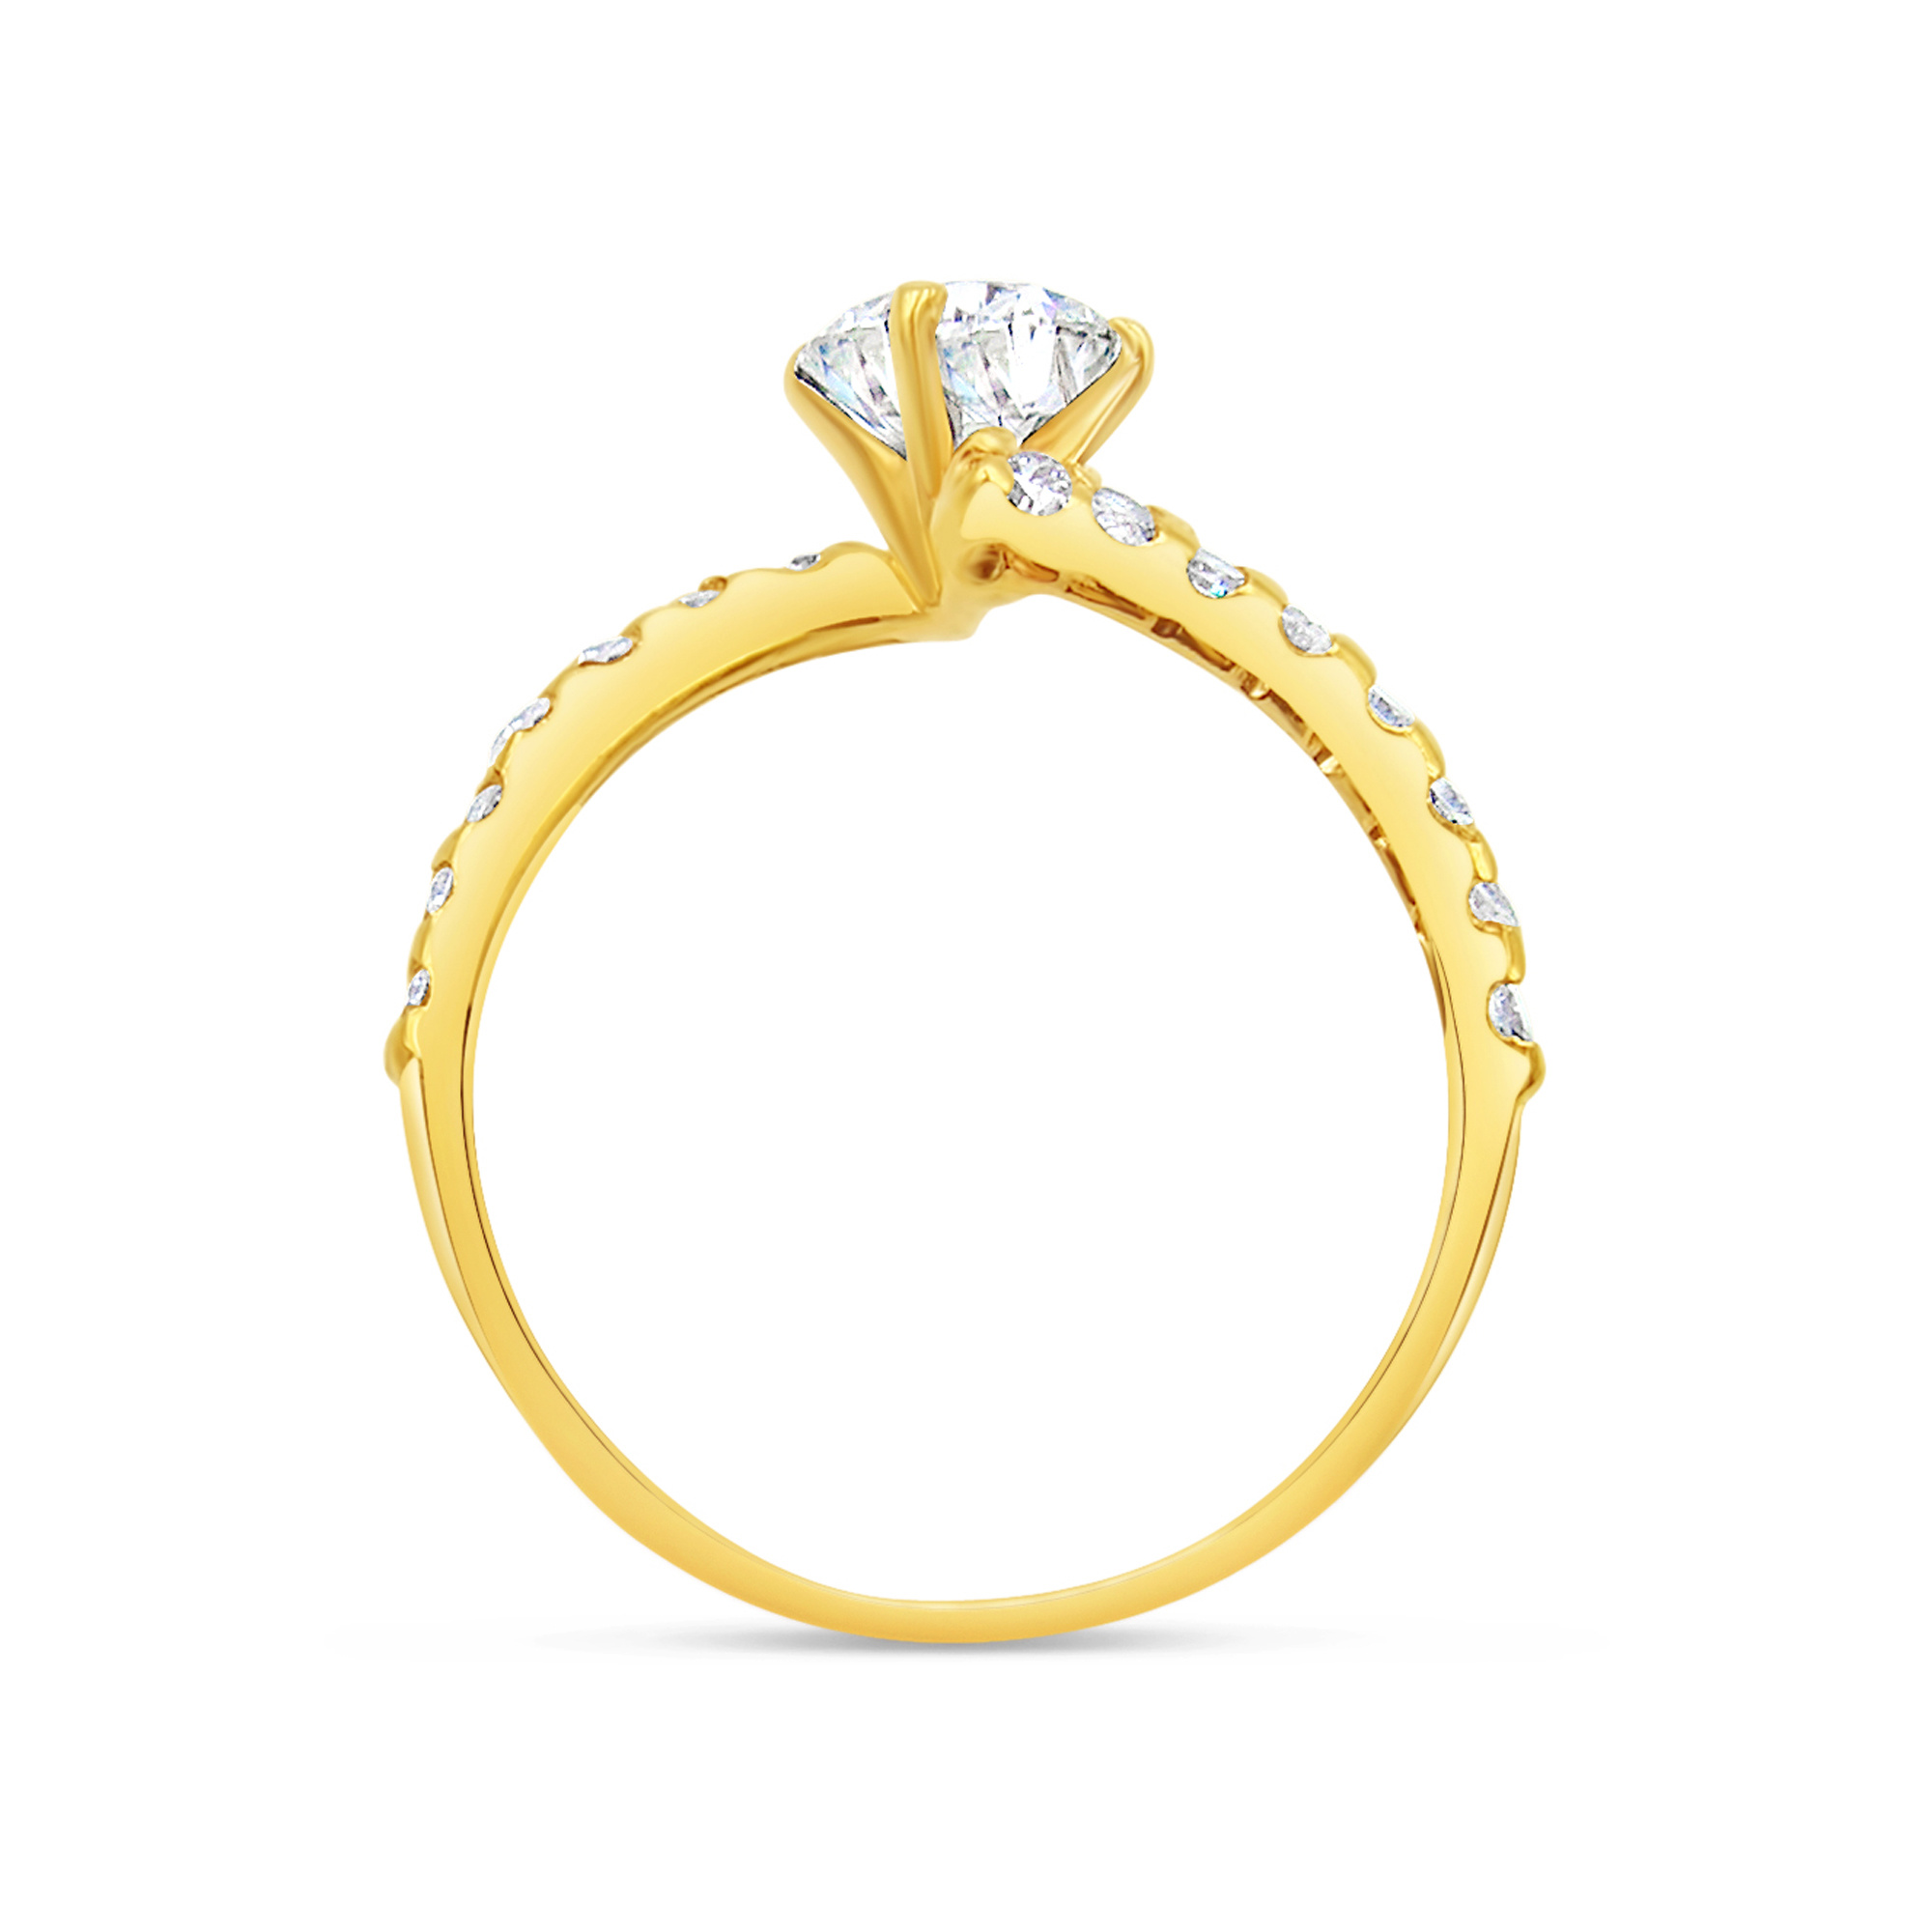 18kt yellow gold engagement ring with 1.23 ct diamonds